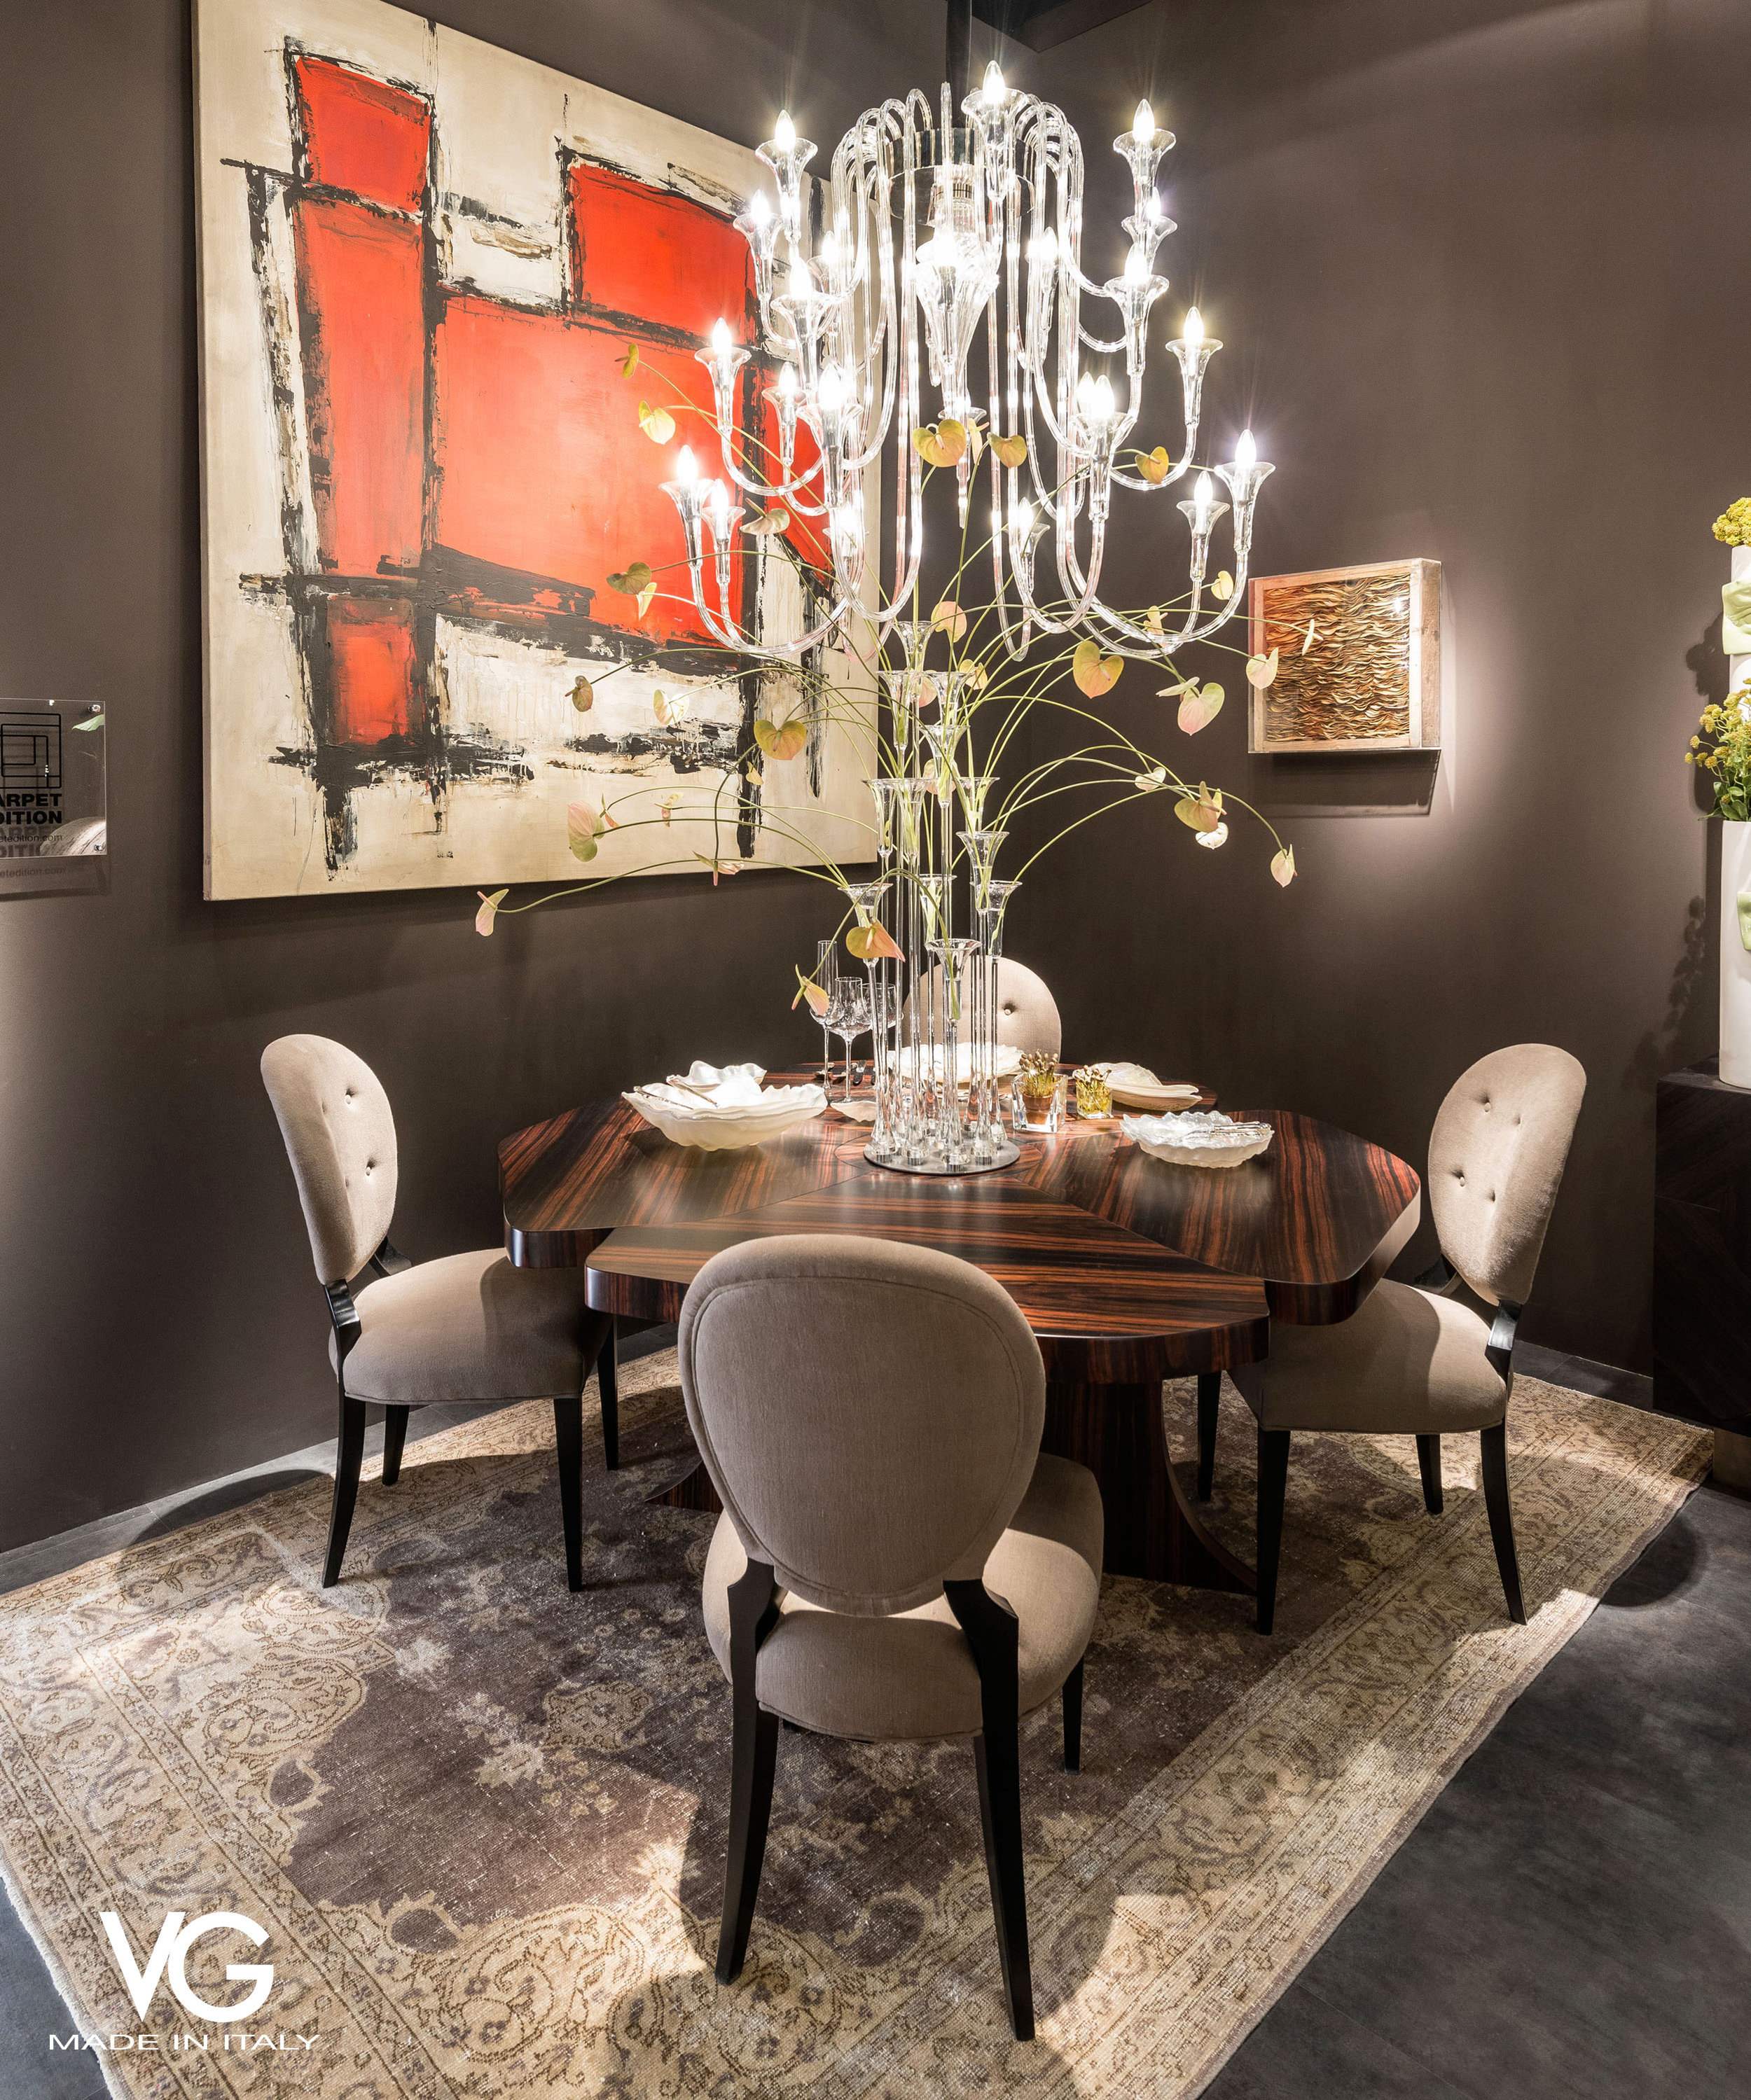 VG New Trend - dining area during the Salone del Mobile in Milan - Masha Shapiro Agency.jpg